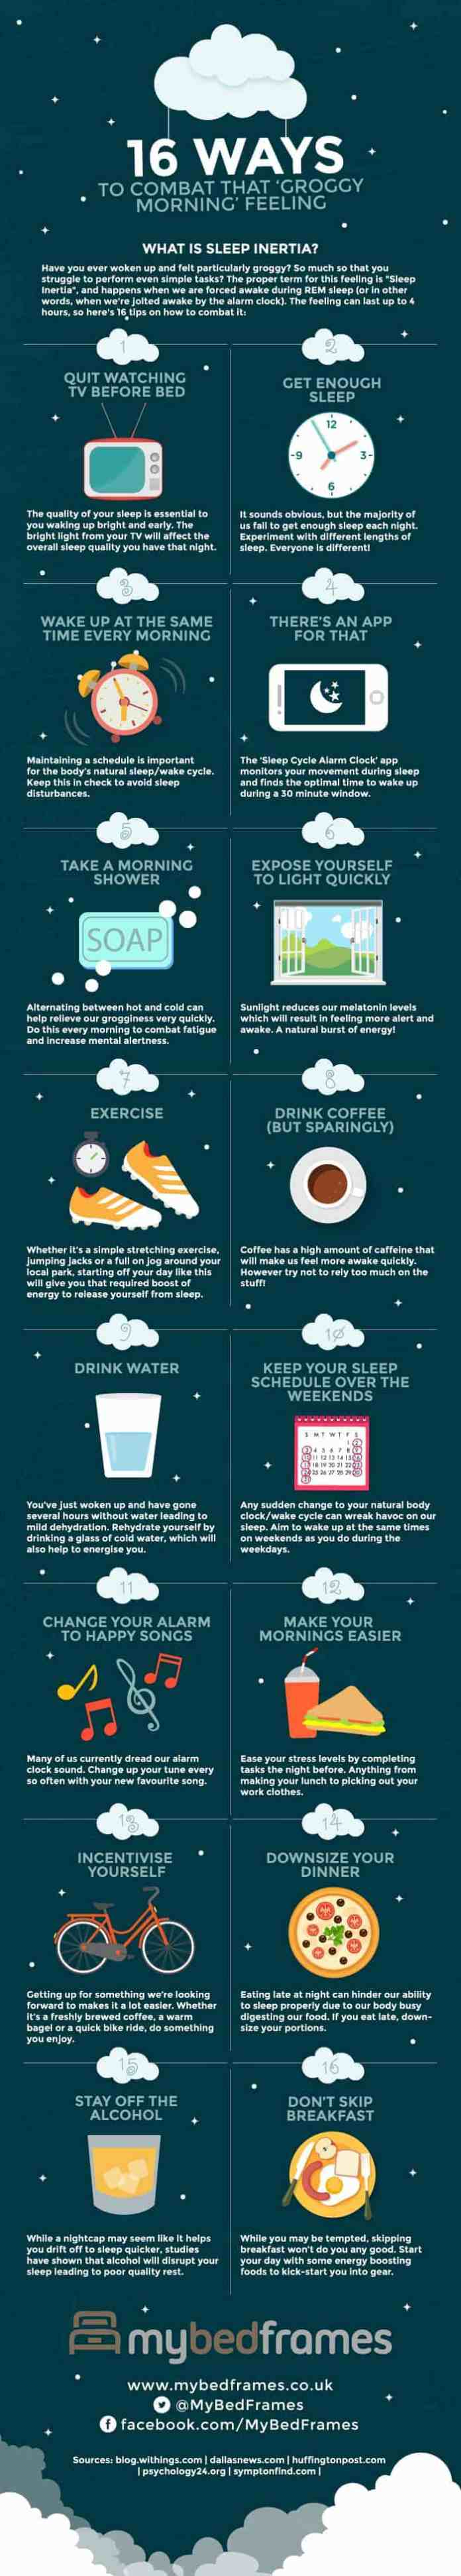 ways for entrepreneur to wake up refreshed